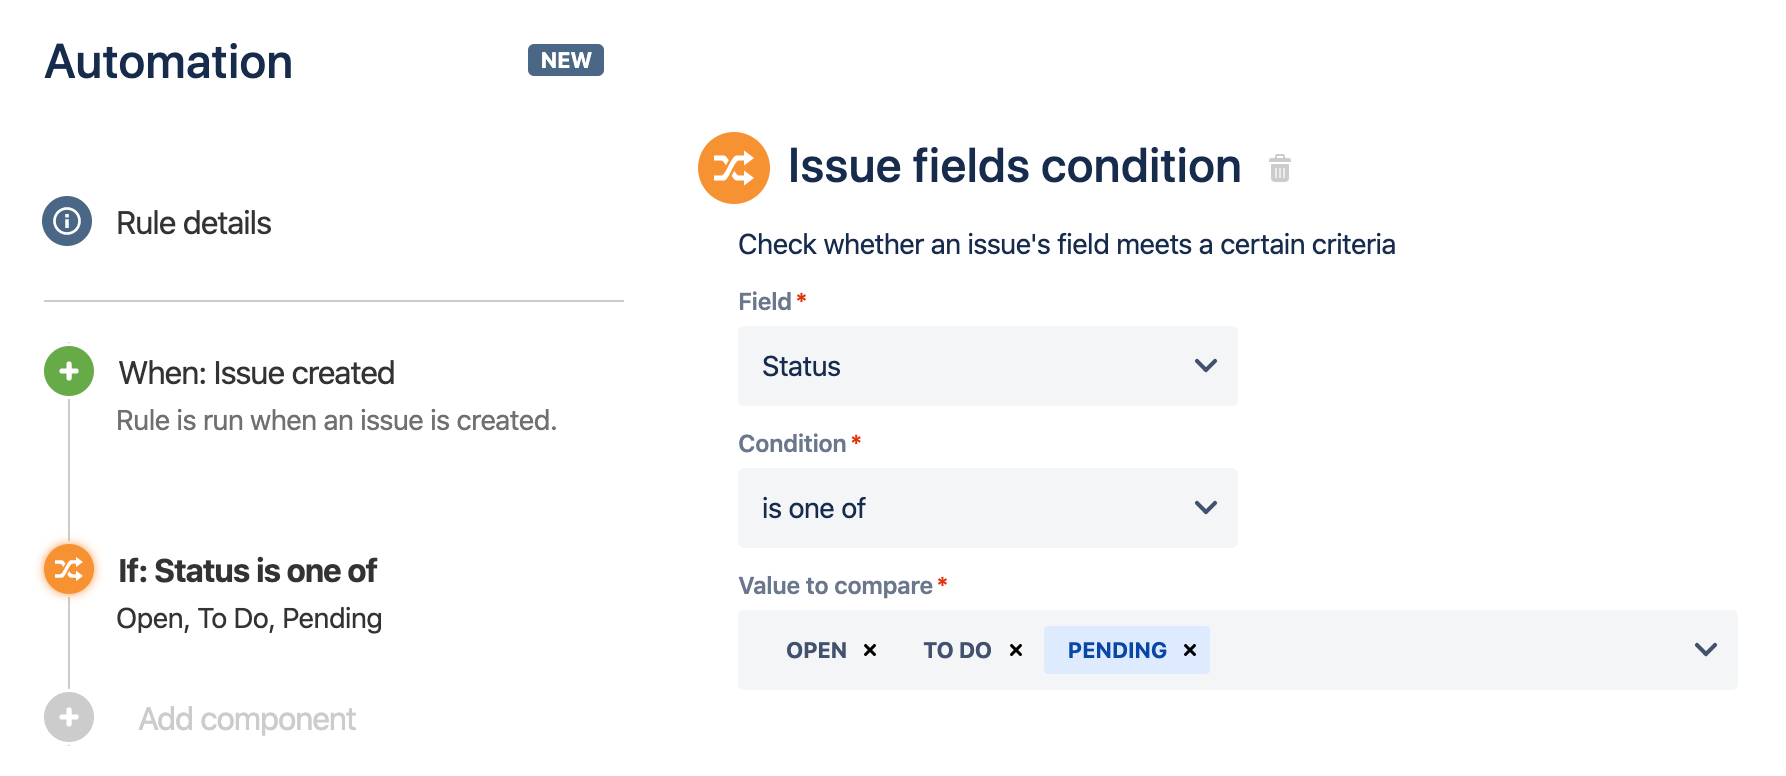 The fields available on the Issue fields condition